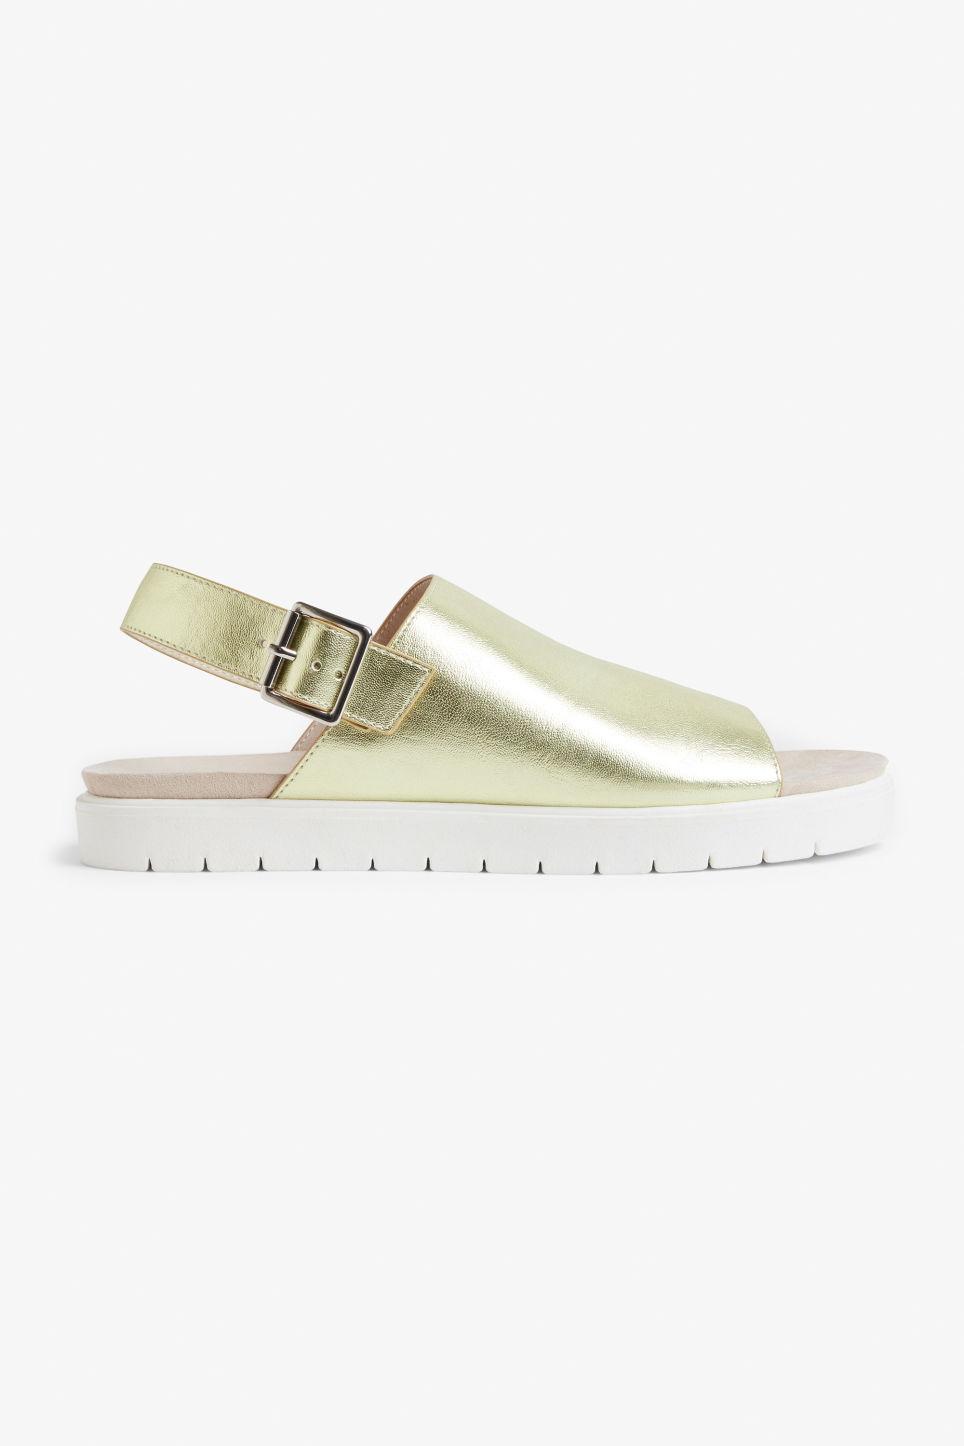 Detailed image of Monki slingback sandals in gold